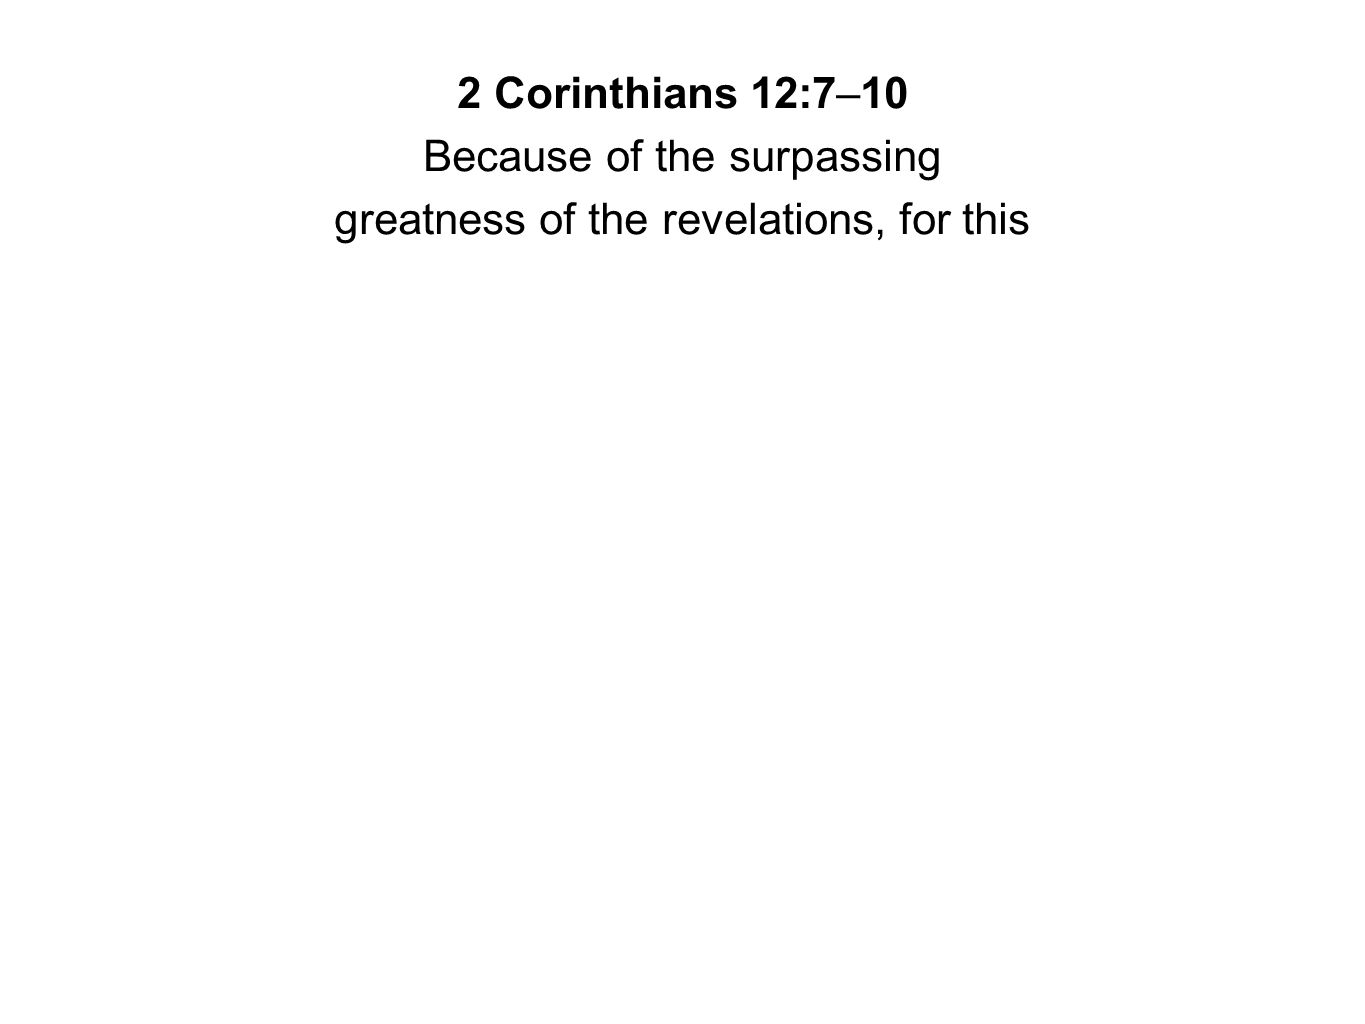 2 Corinthians 12:7–10 Because of the surpassing greatness of the revelations, for this